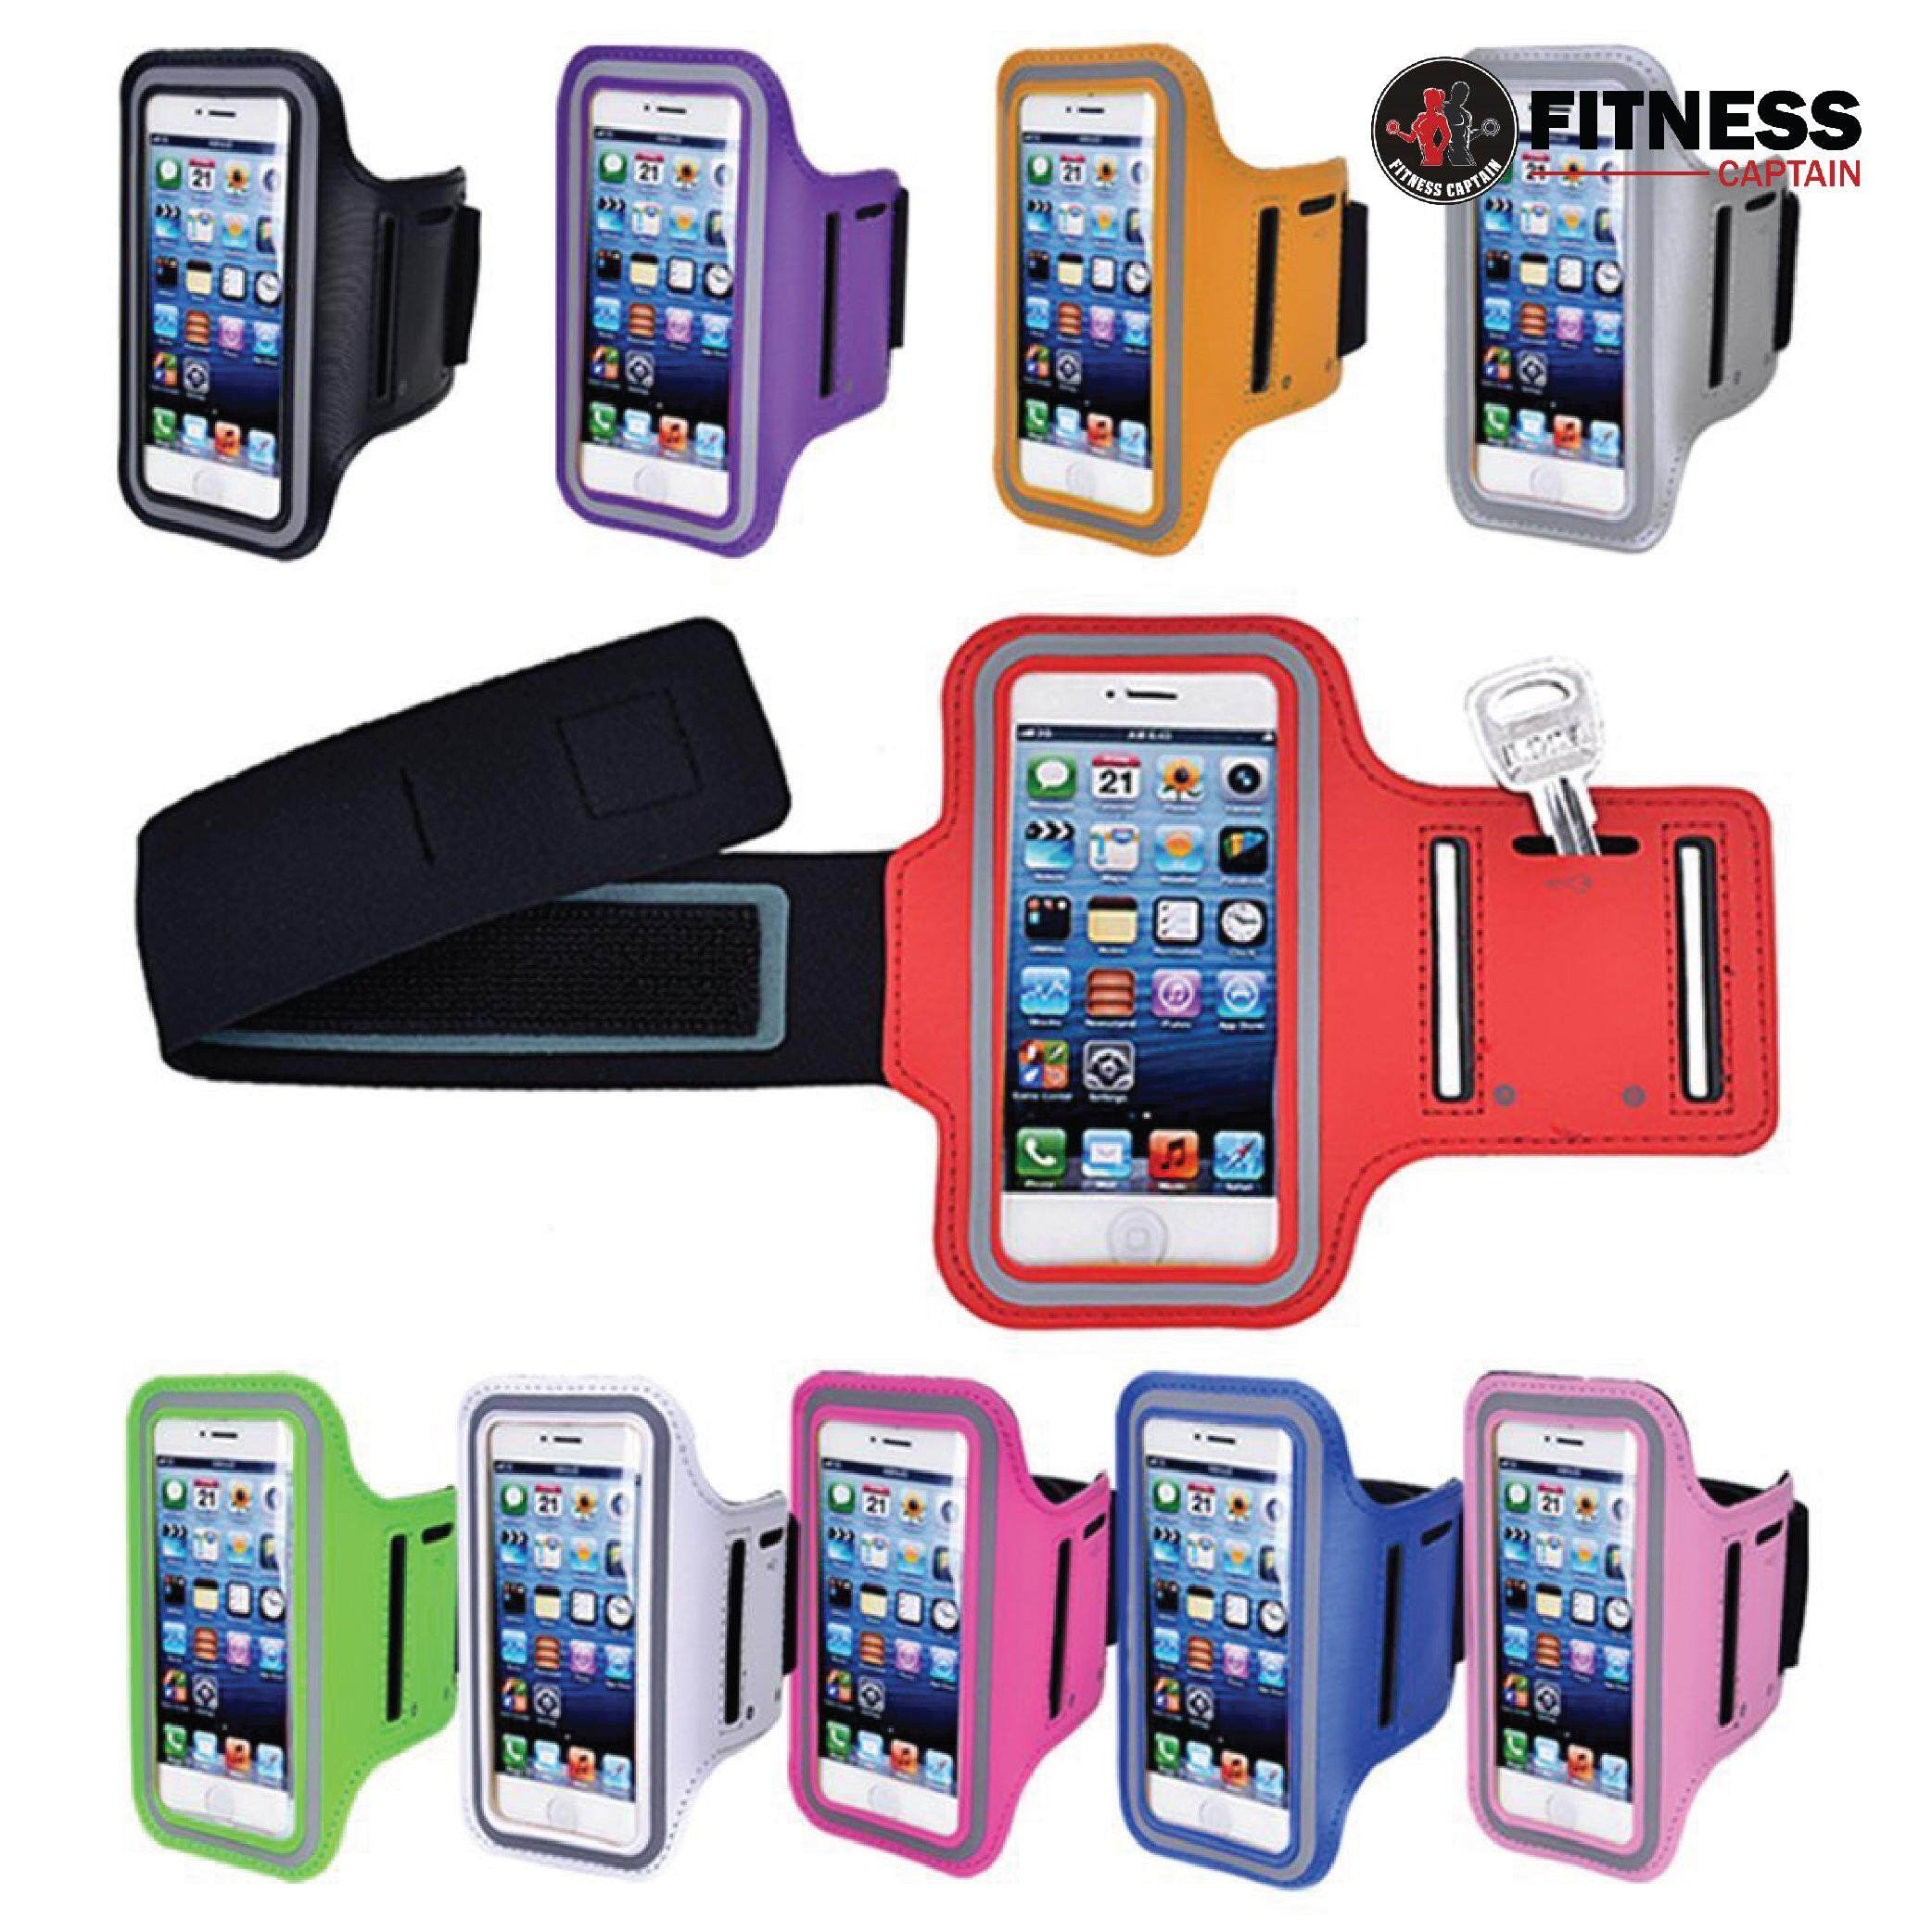 L Size (4.7) Phone Armband Bag Sports Running Jogging Gym Armband Case Cover Holder By Fitness Captain.